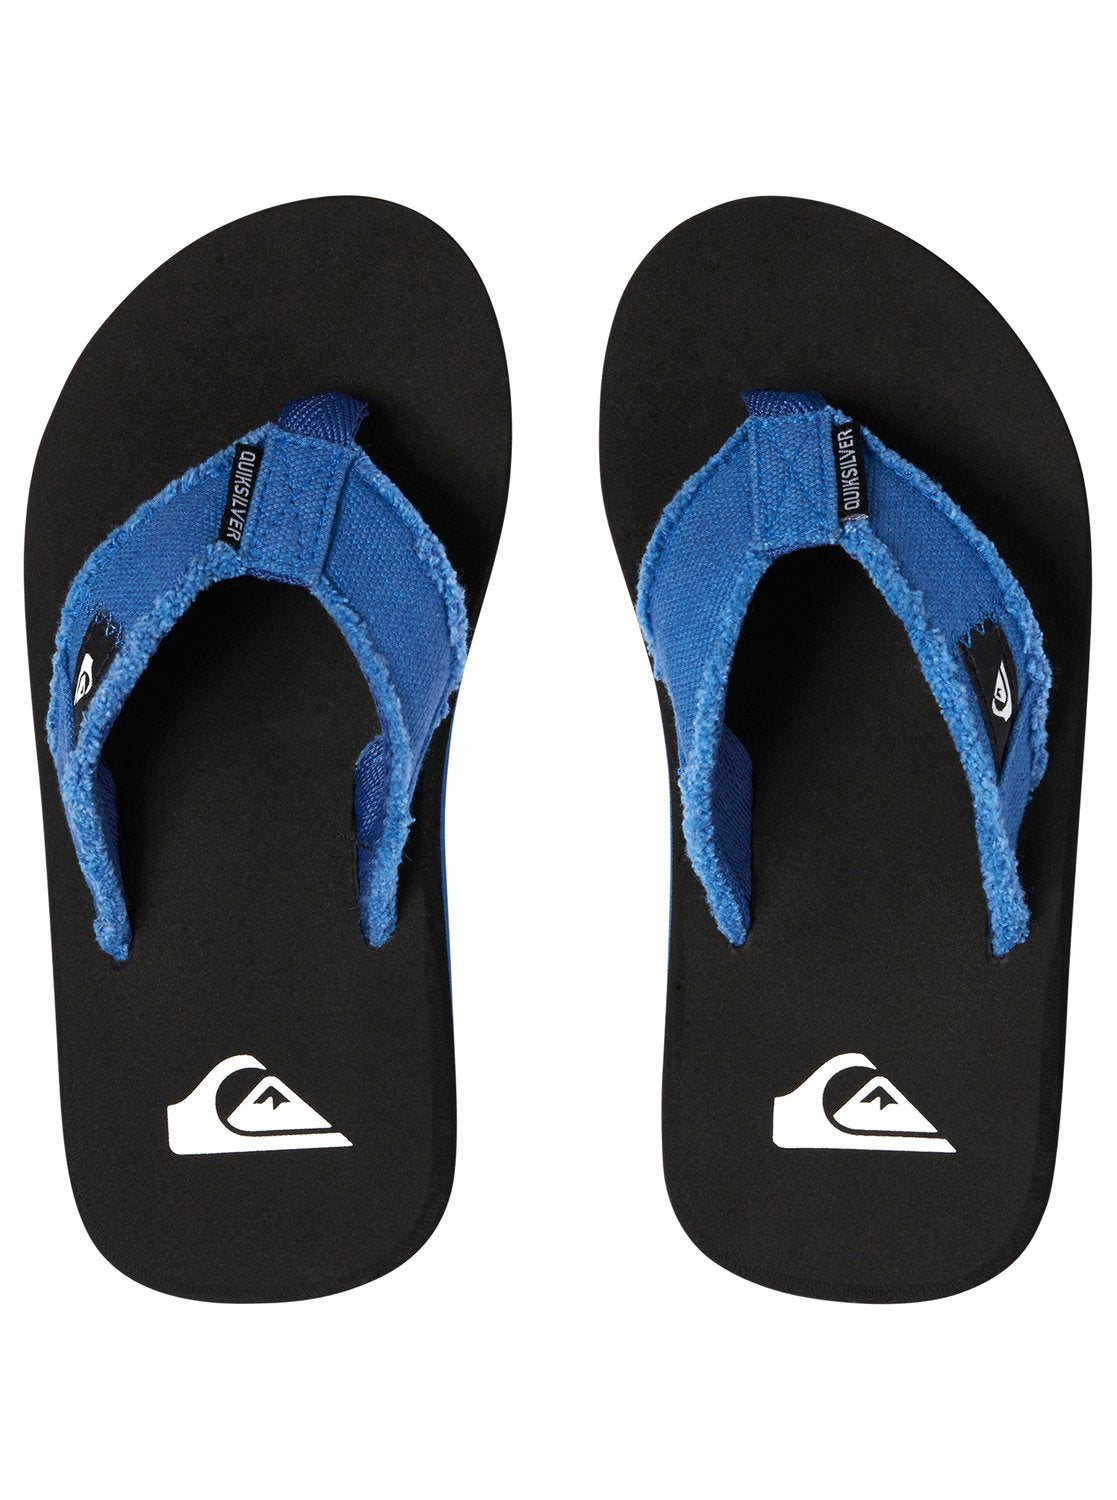 outlet store high quality materials offer discounts BOYS QUIKSILVER